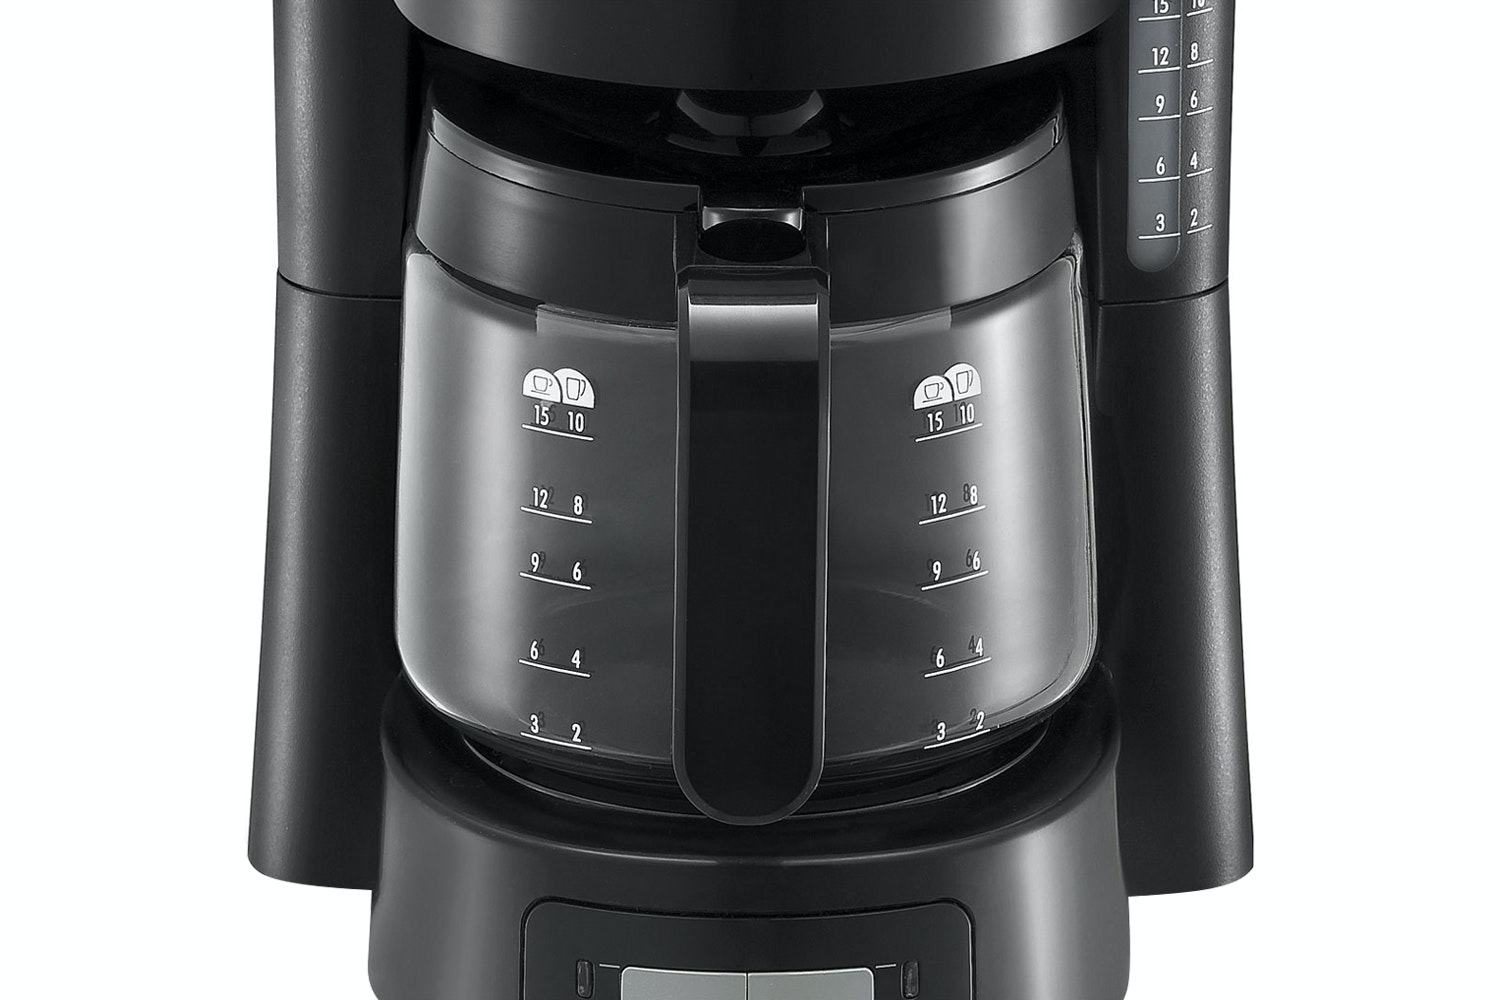 DeLonghi Filter Coffee Machine | Black